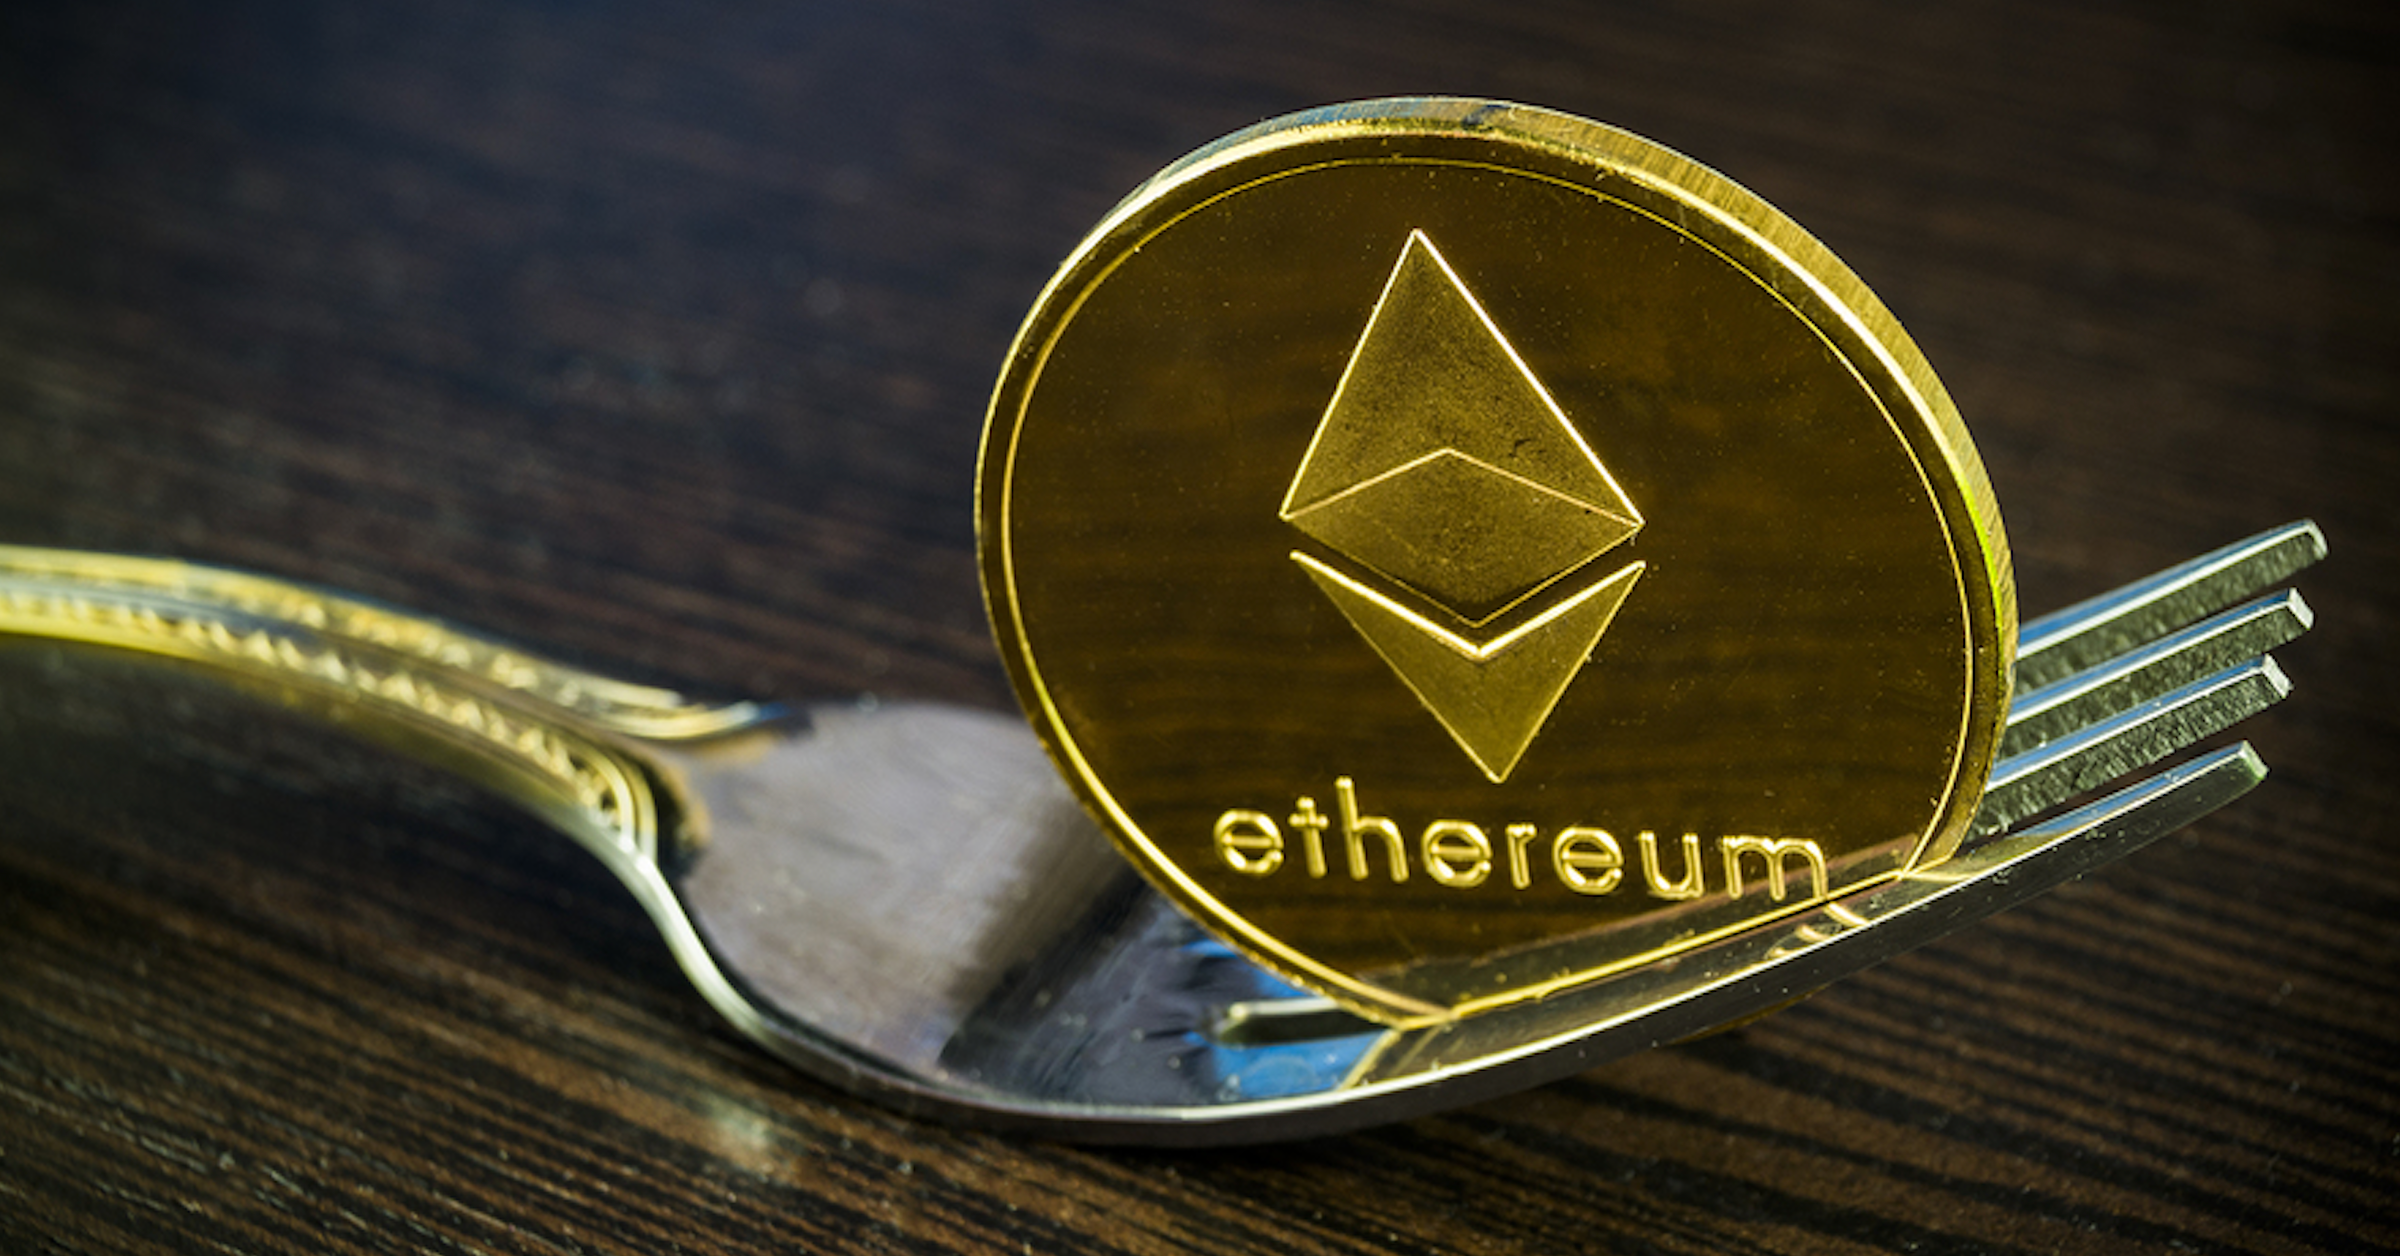 ethereum-constantinople-hard-fork-cryptocurrency-bitcoin-blockchain-ether-eth_jpg.